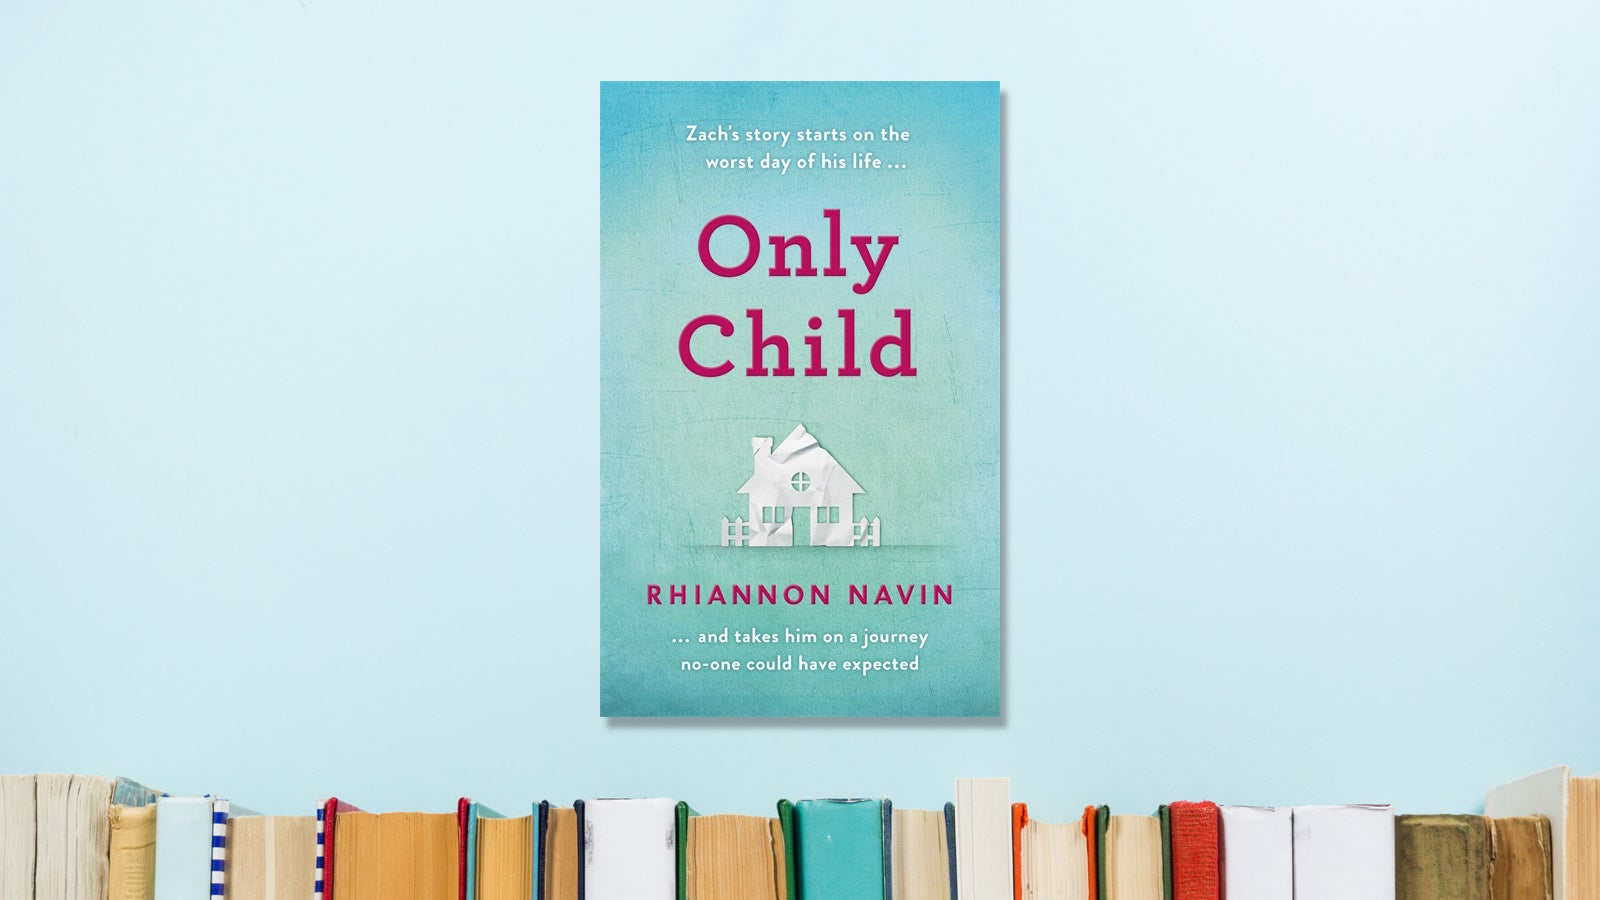 Rhiannon Navin - Only Child book cover